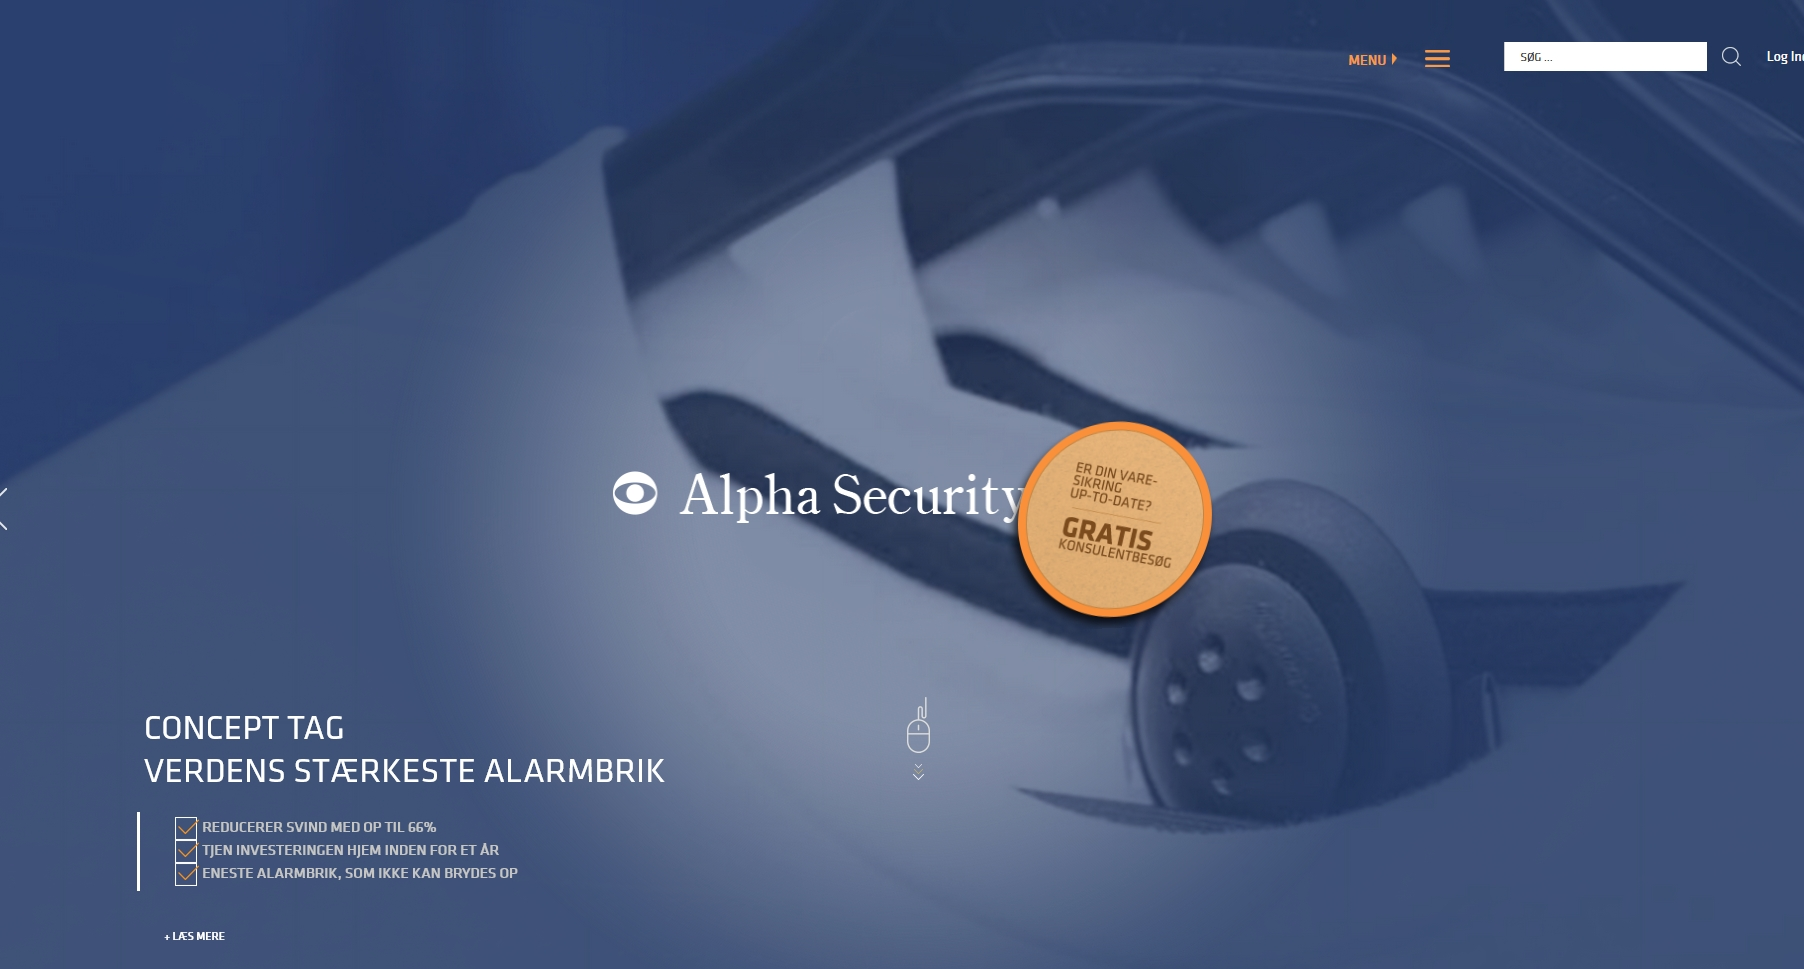 Detaljer : Alpha Security ApS